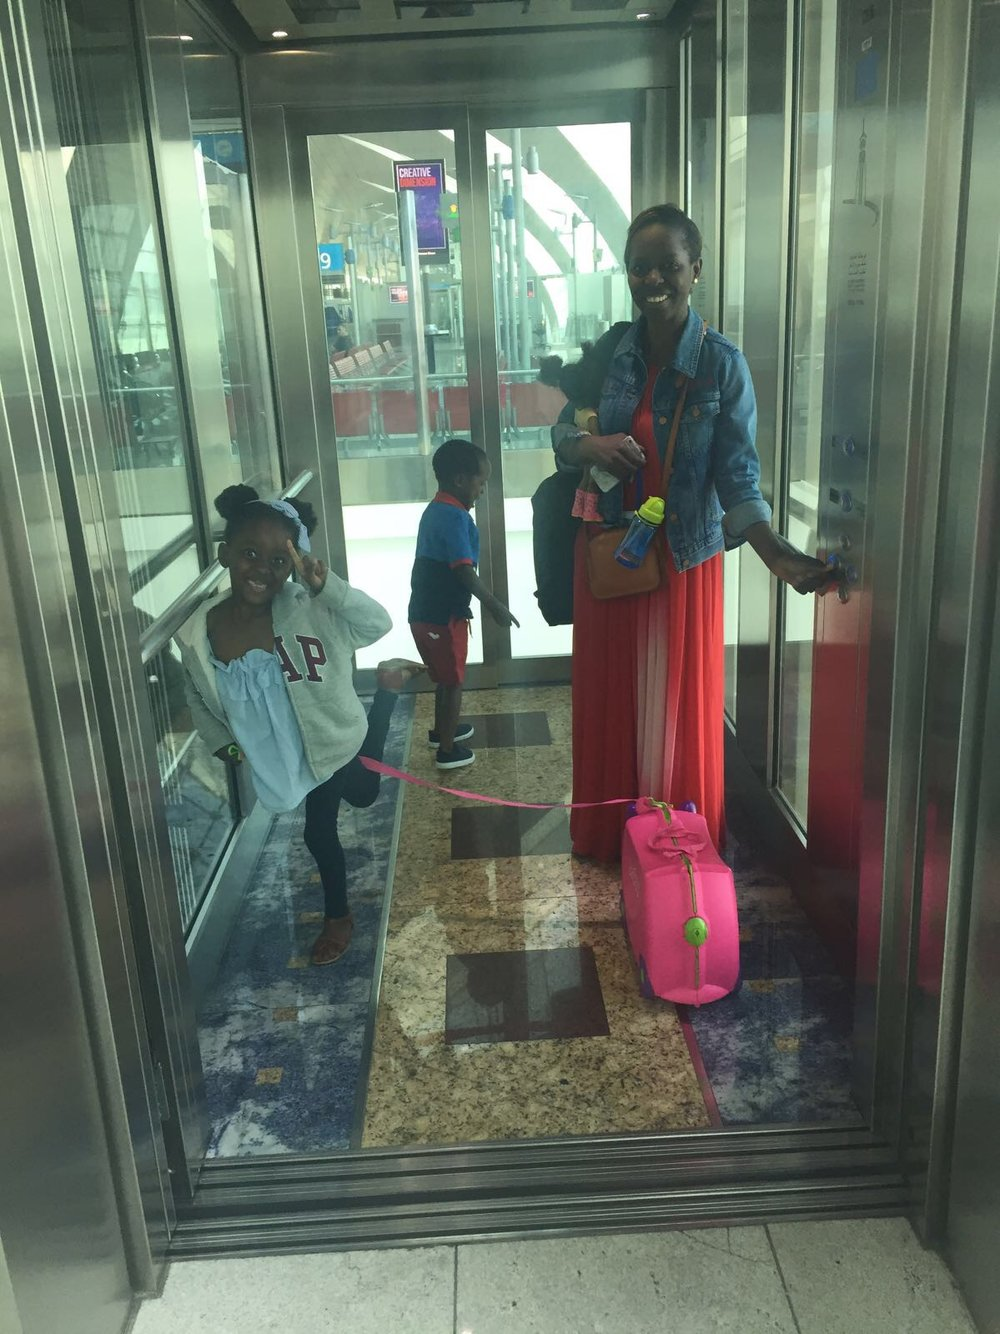 Look at the joy on that face as she drags her trunki! We were in transit, leaving Dubai for Harare here.